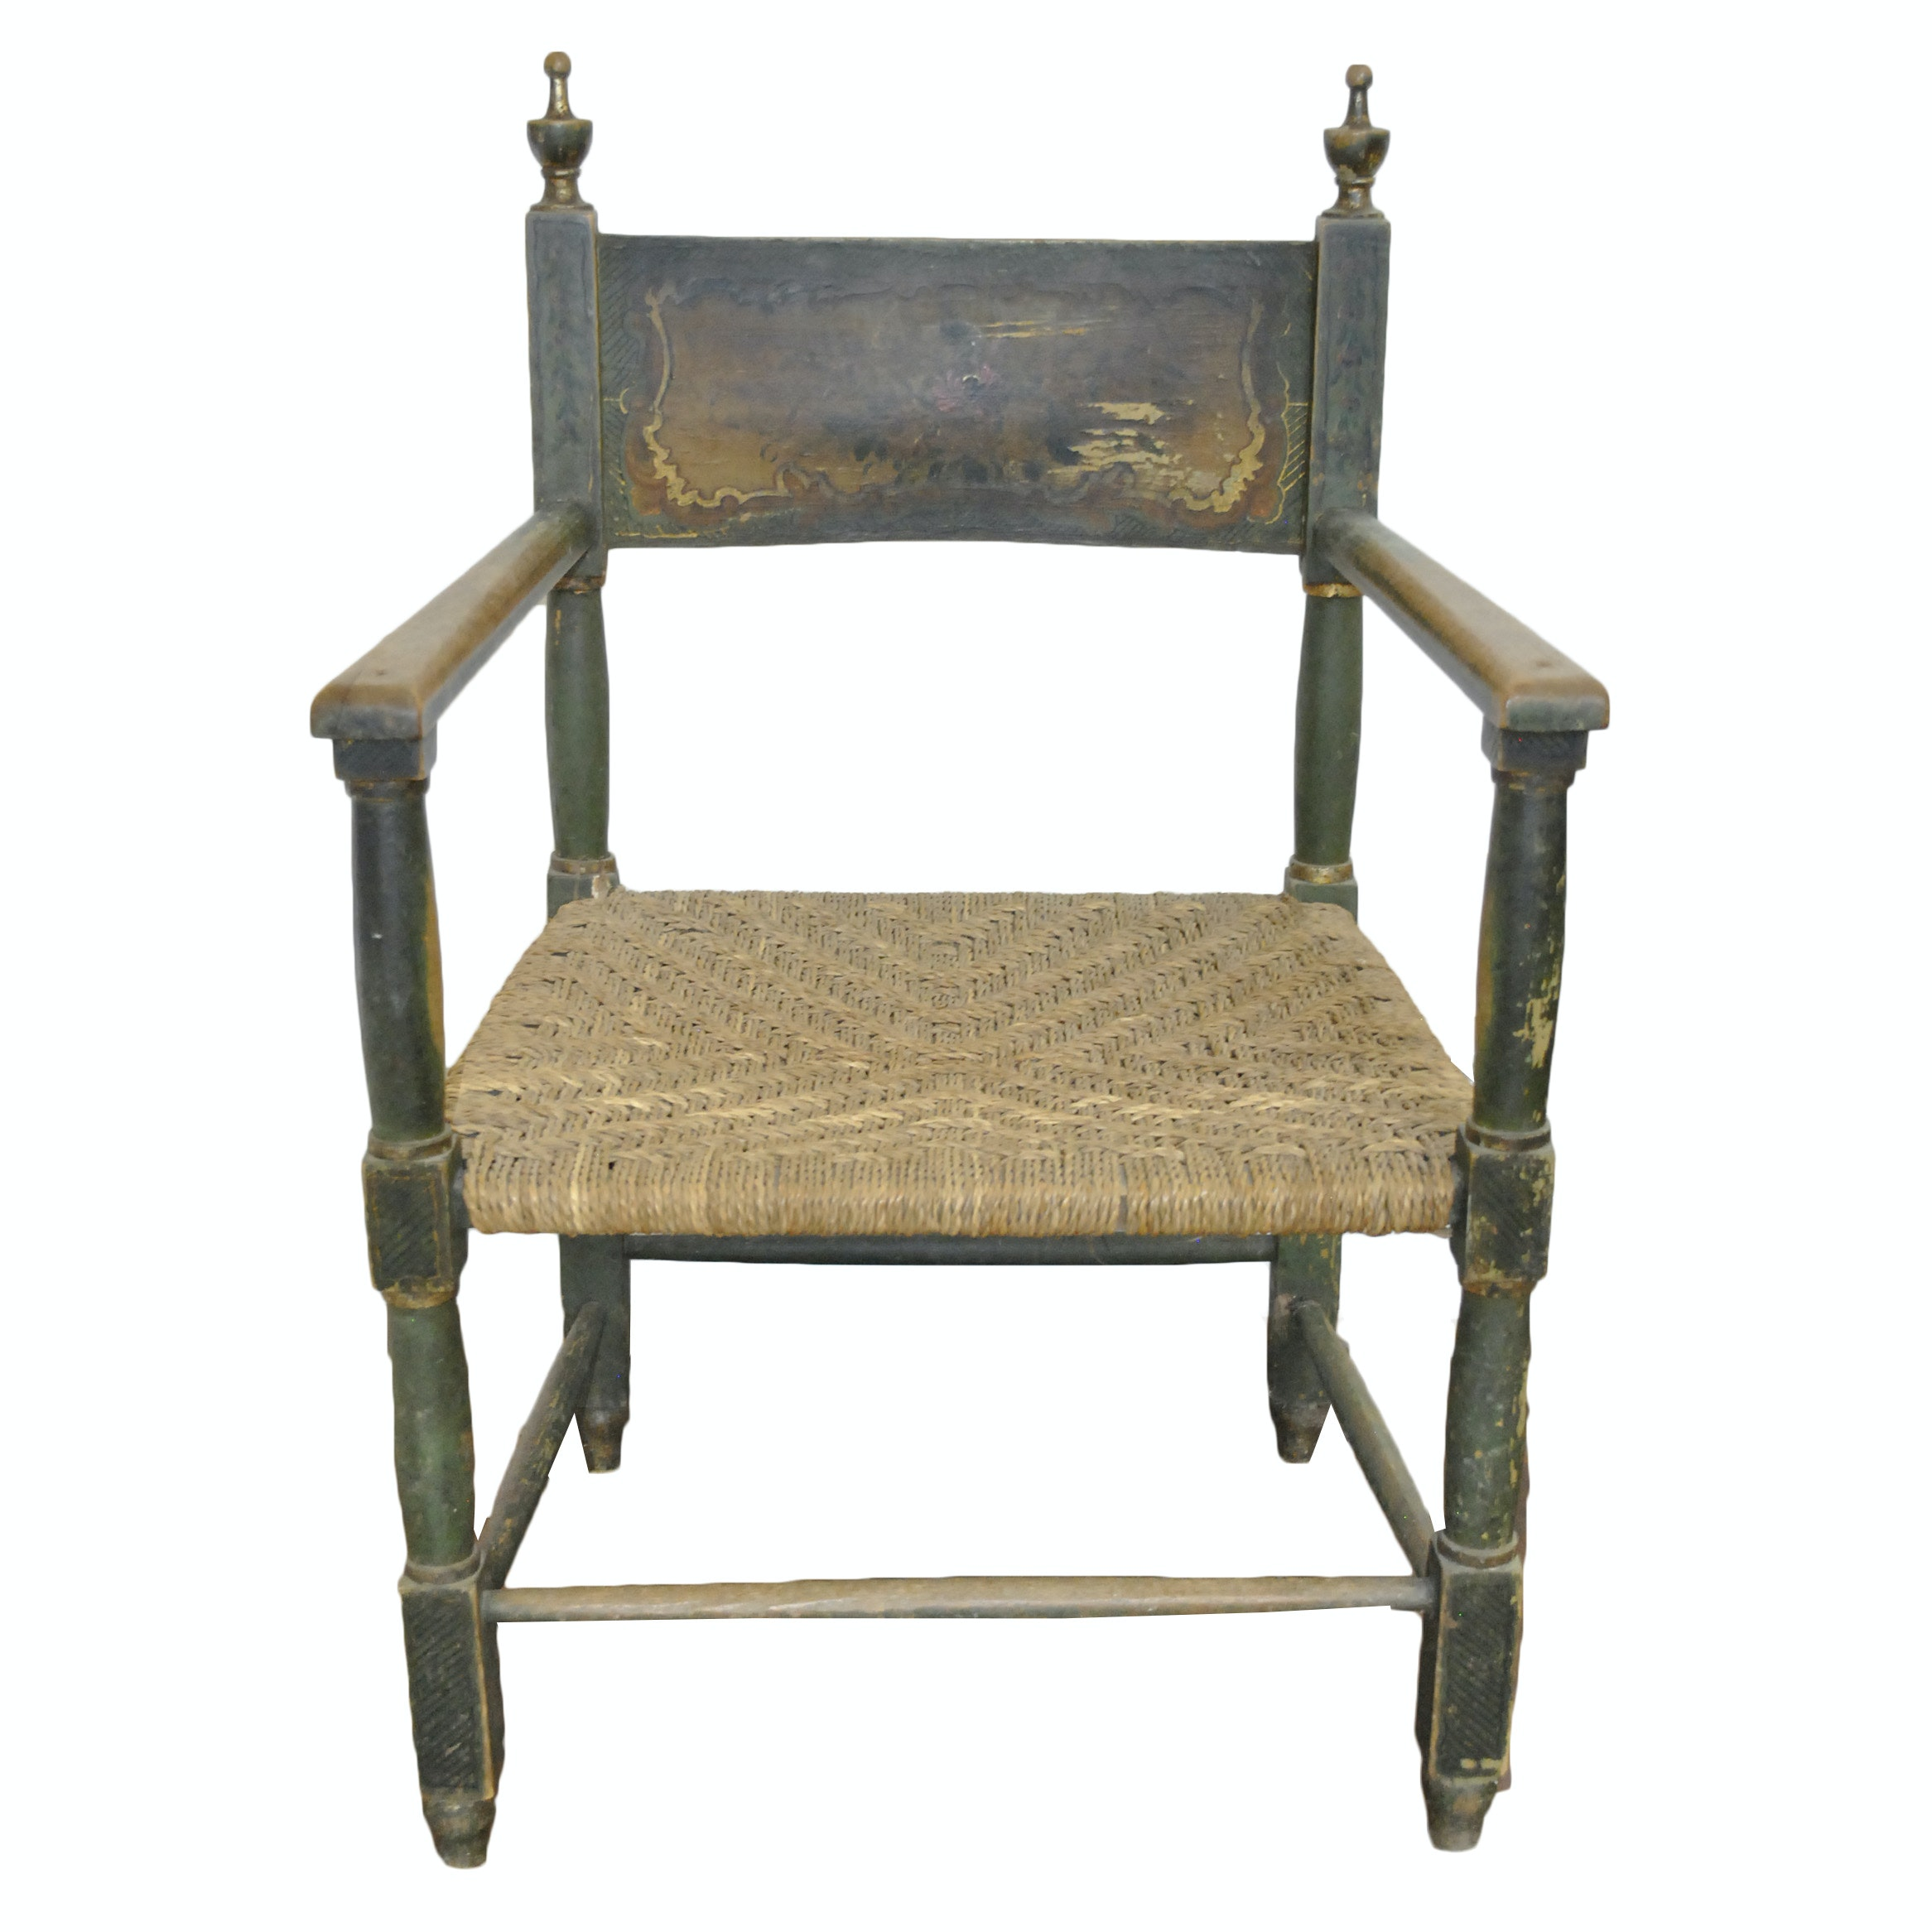 Antique Hand Painted Wooden Armchair with Rush Seat